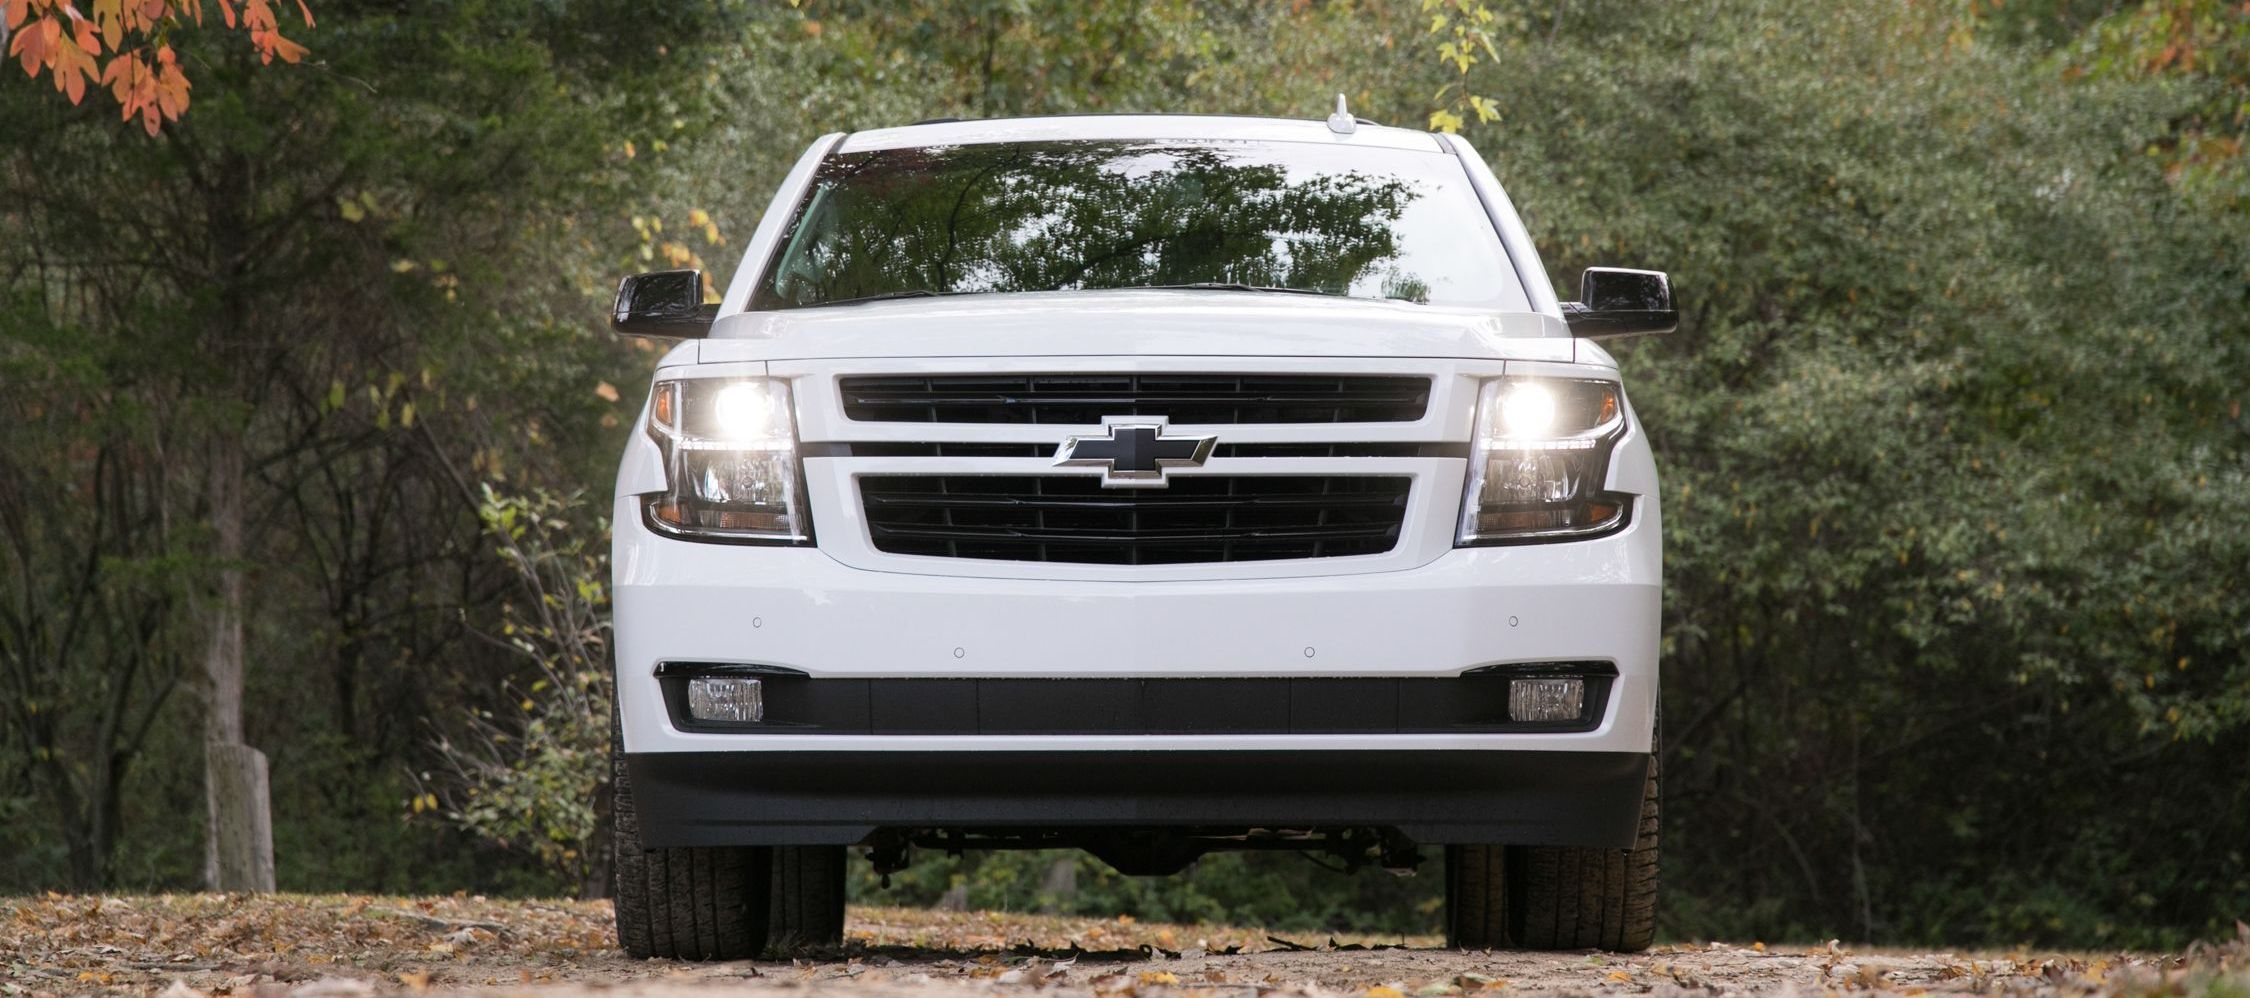 9005 replacement bulbs for Chevy Tahoe